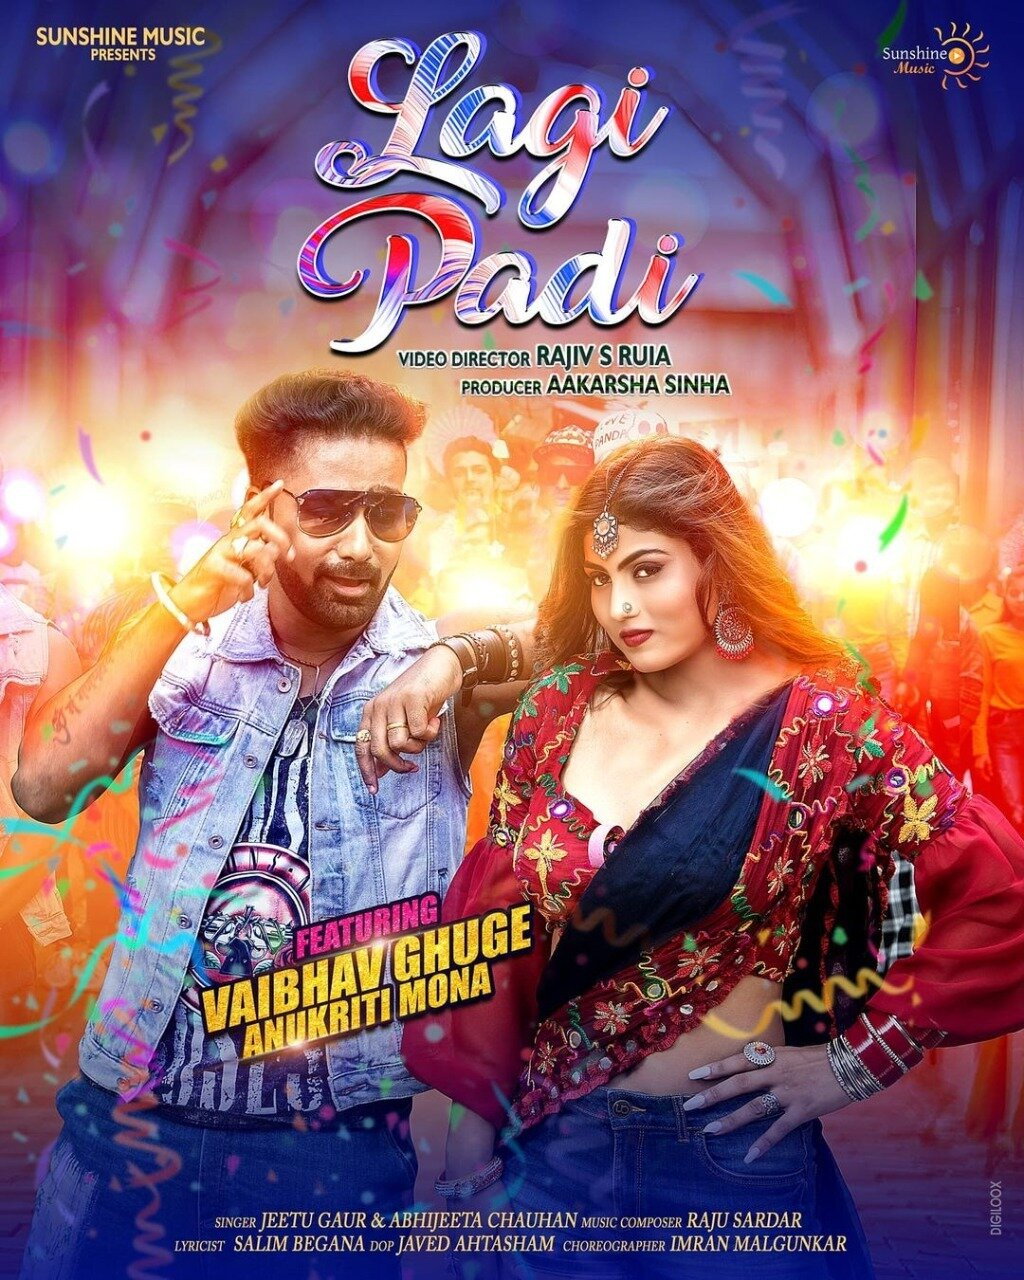 """Vaibhav Ghuge feels blessed about his song Lagi Padi; """"Shilpa Shetty Ma'am was awed by my performance in the song"""""""